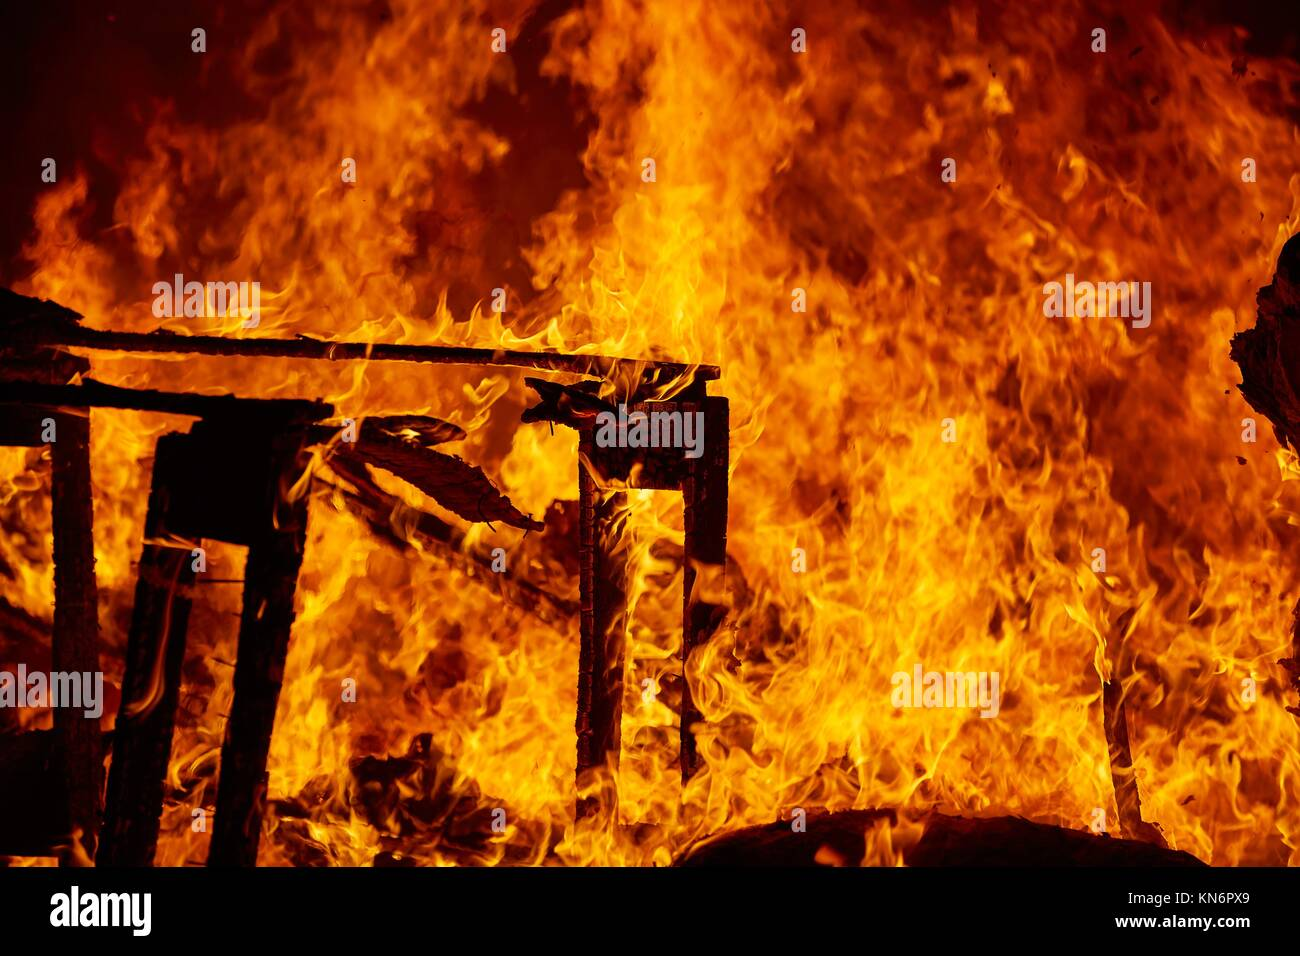 Fallas fire burning in Valencia fest at March 19 th Spain tradition. - Stock Image